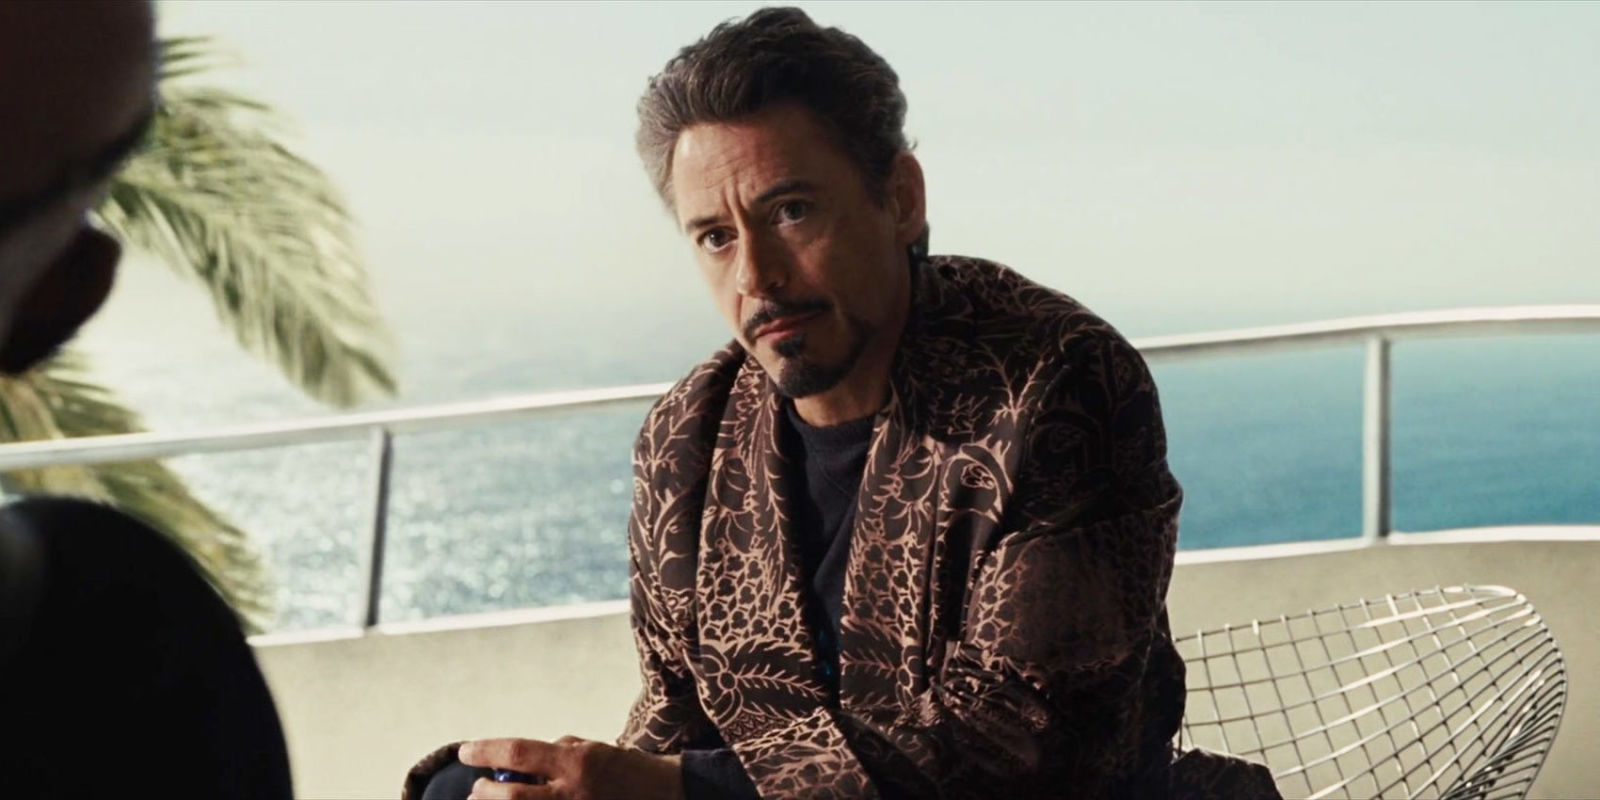 Iron Man 2 has a touching Easter egg about Tony Stark's father